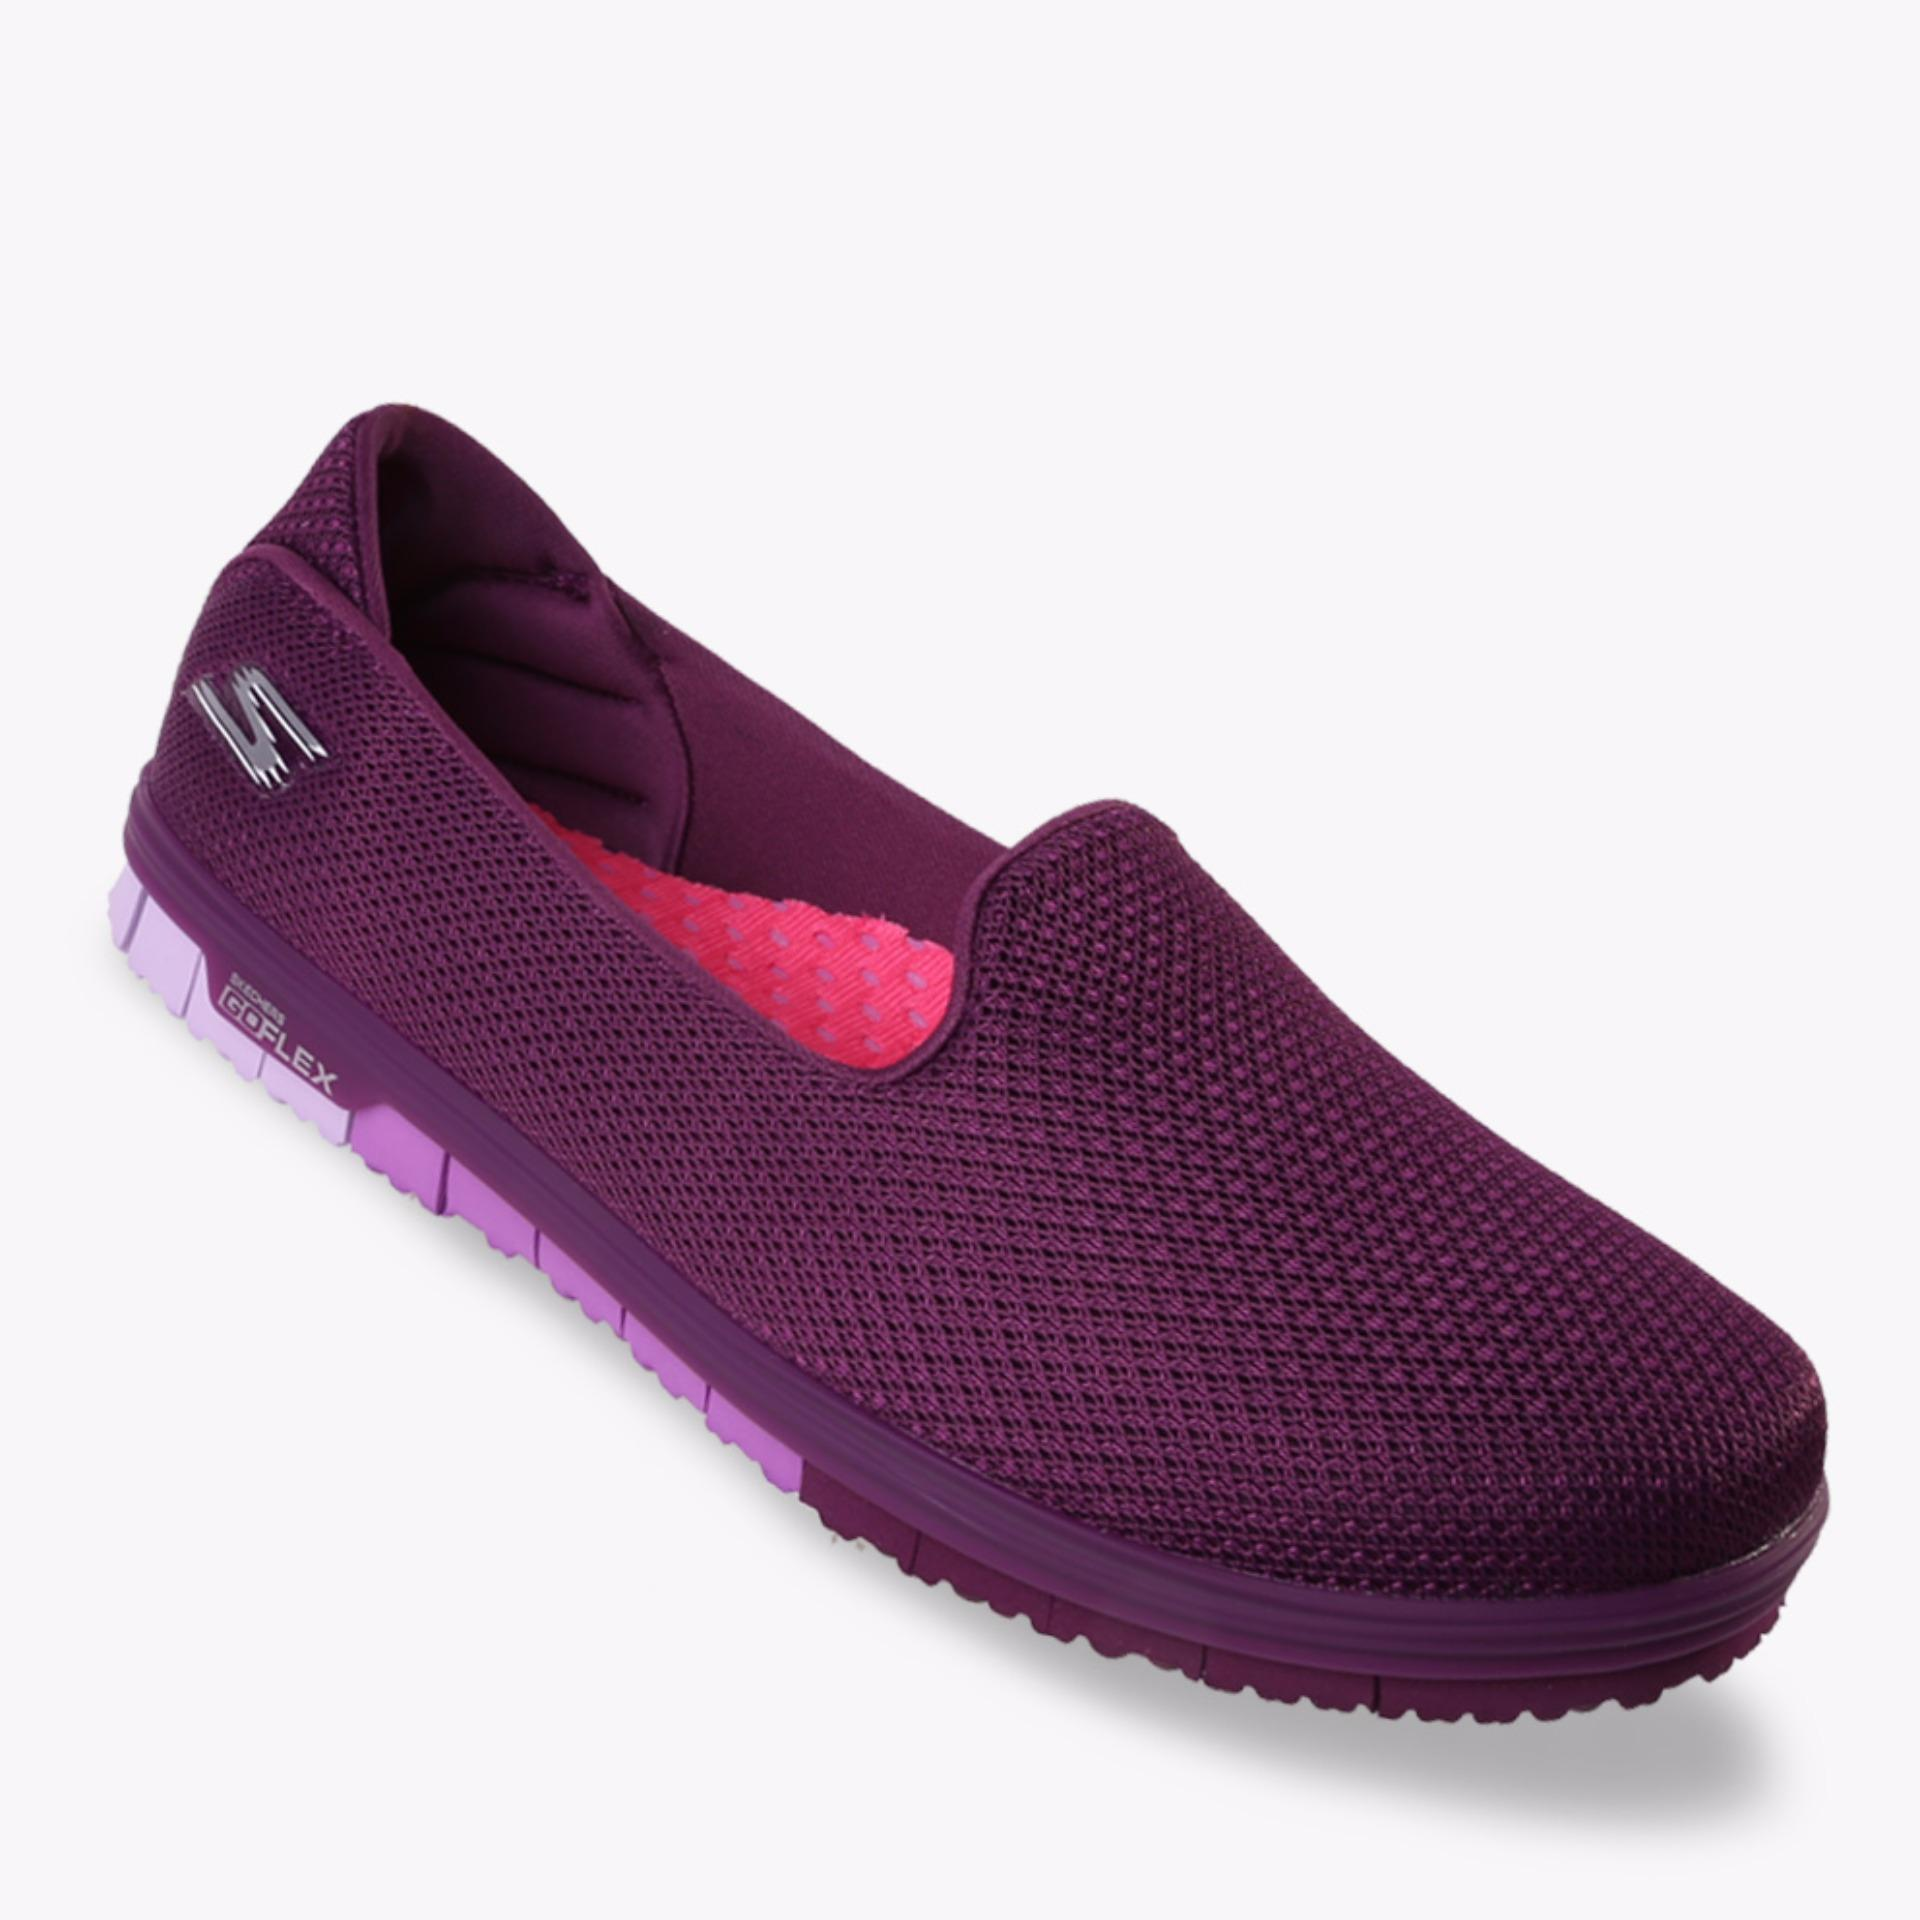 Harga Skechers Go Mini Flex Walk Women S Slip On Ungu Terbaik